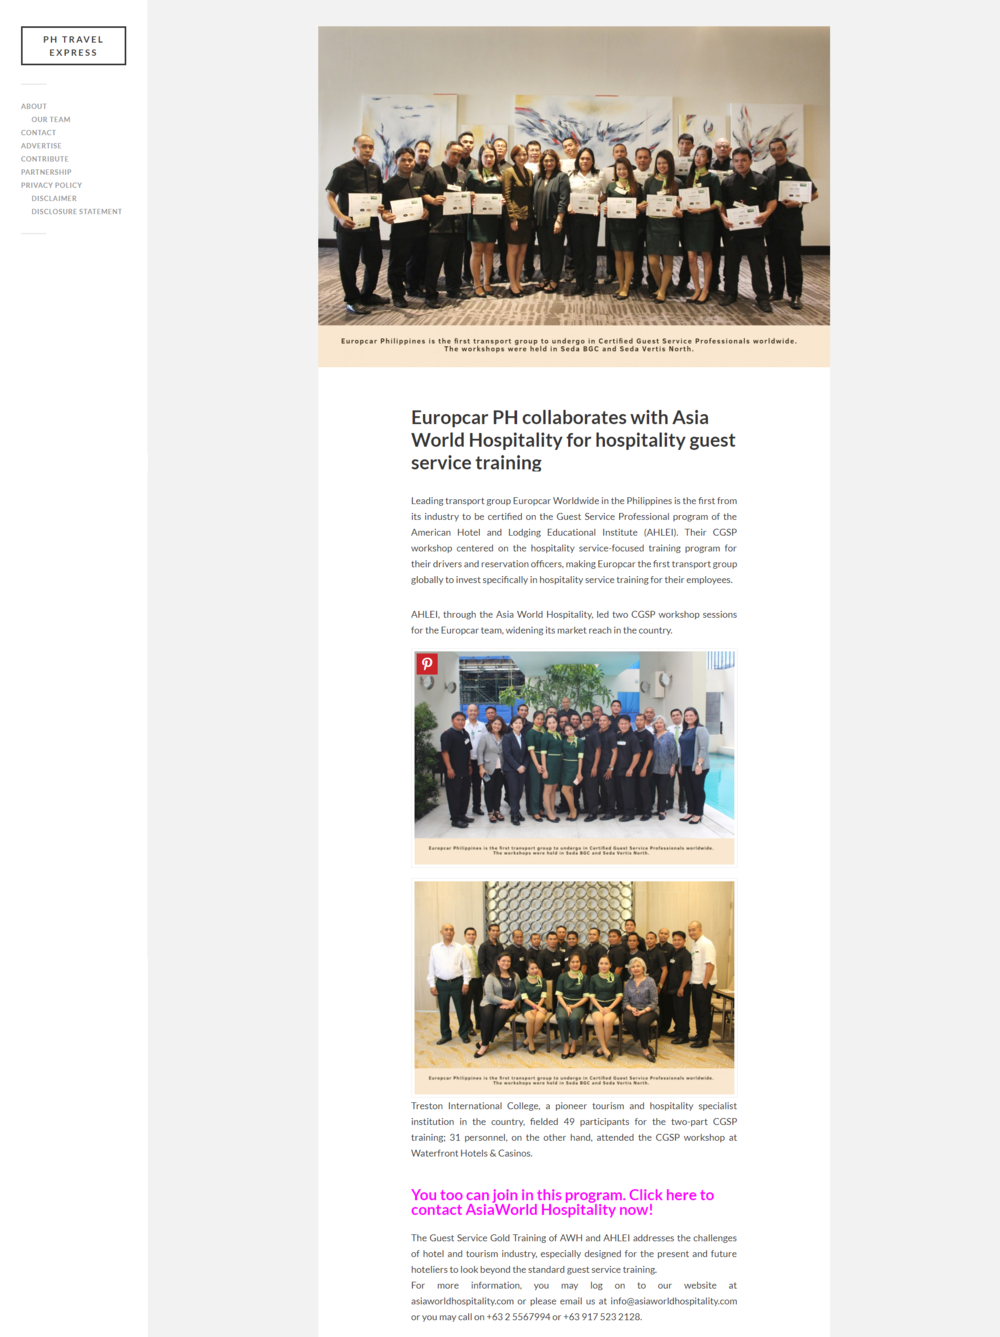 PHTravelExpress | November 2,2017  http://www.phtravelexpress.com/europcar-ph-collaborates-with-asia-world-hospitality-for-hospitality-guest-service-training/